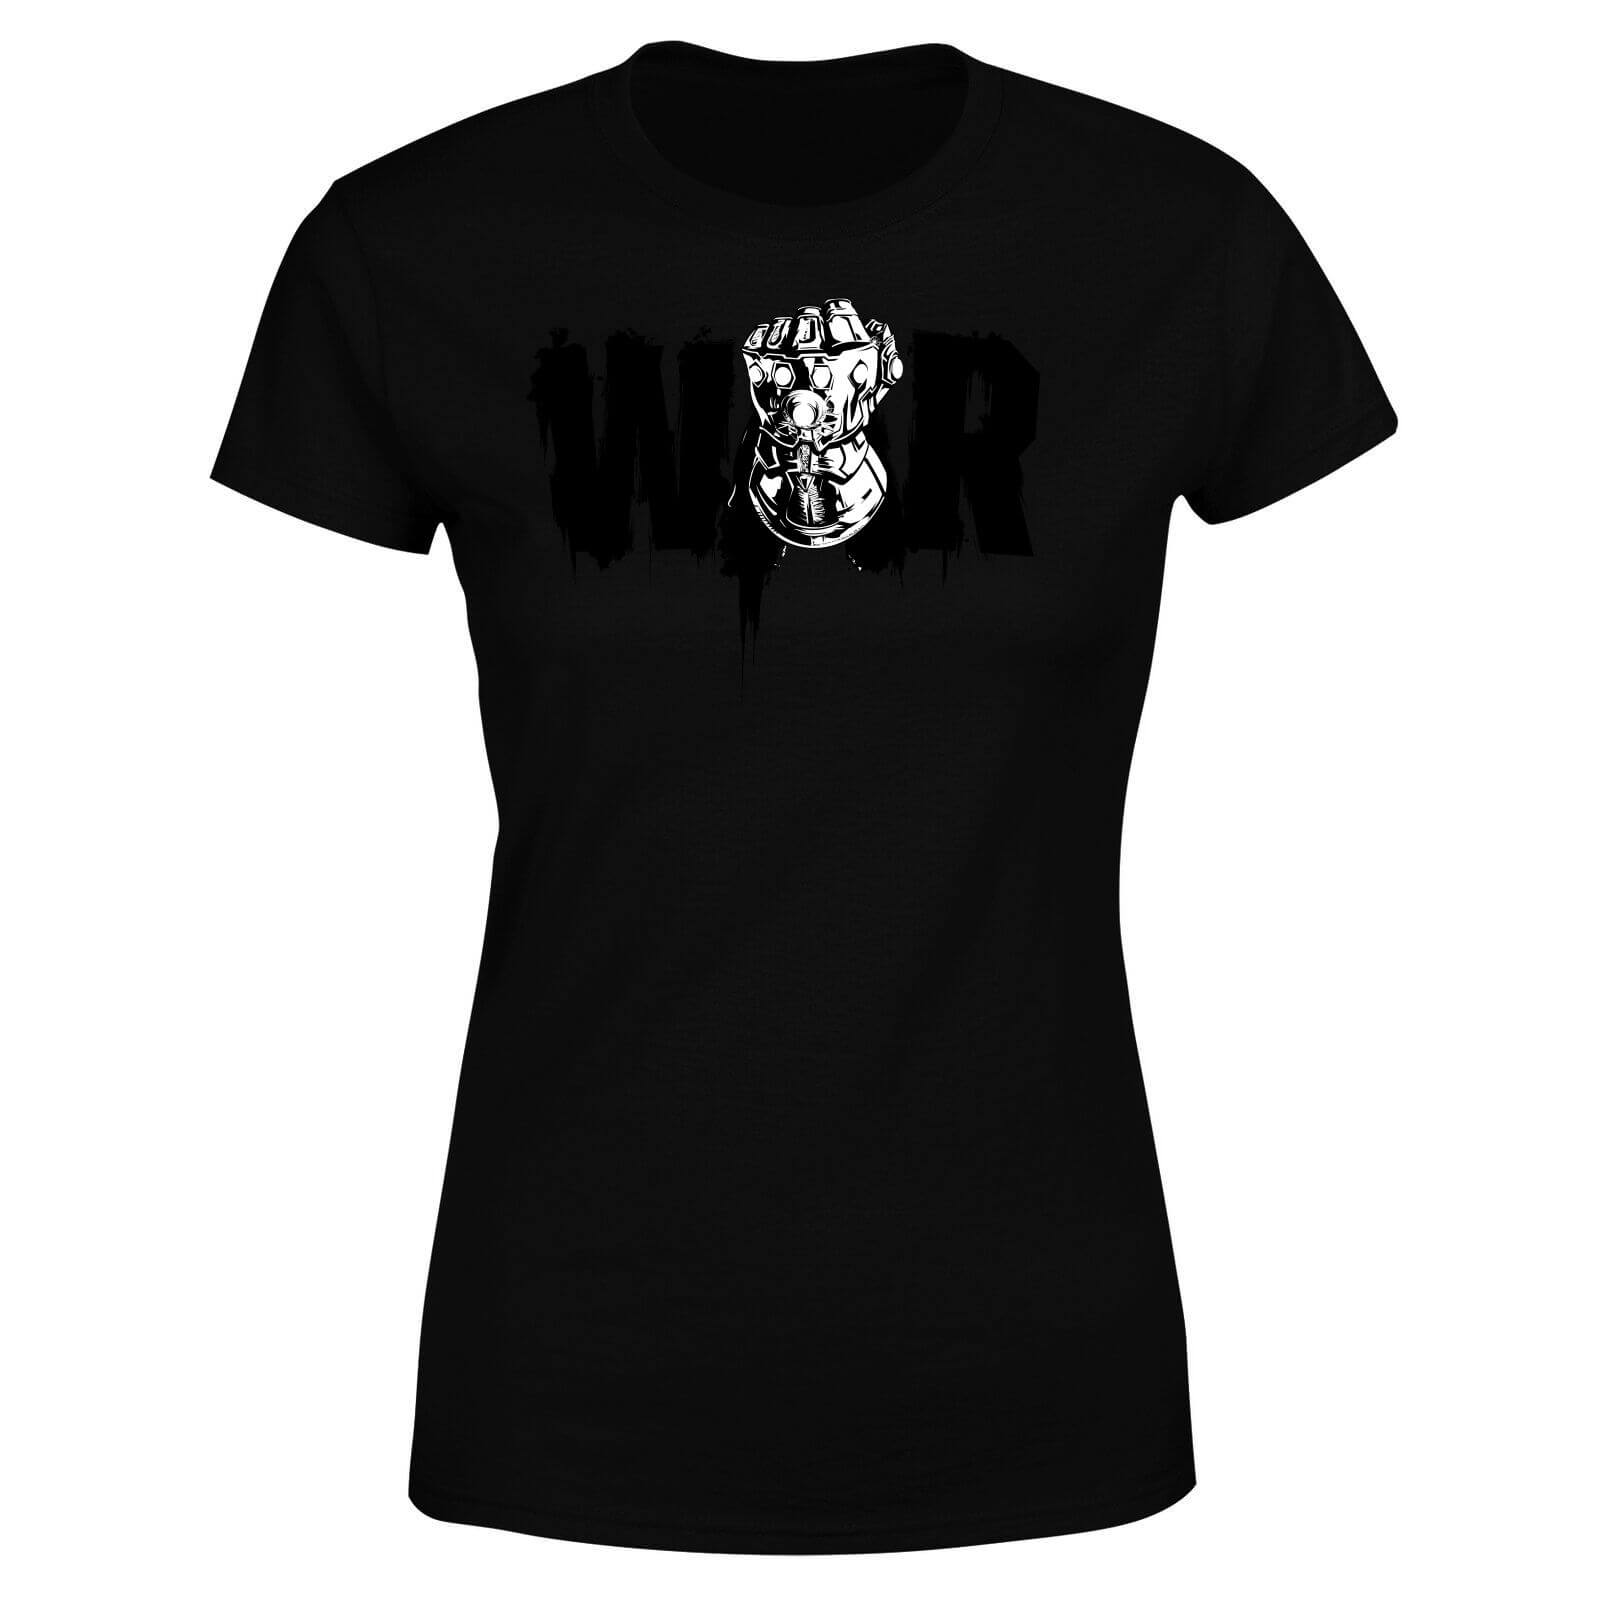 Marvel Avengers Infinity War War Fist Women s T-Shirt - Black Clothing    Zavvi US 8c8ab8e20c